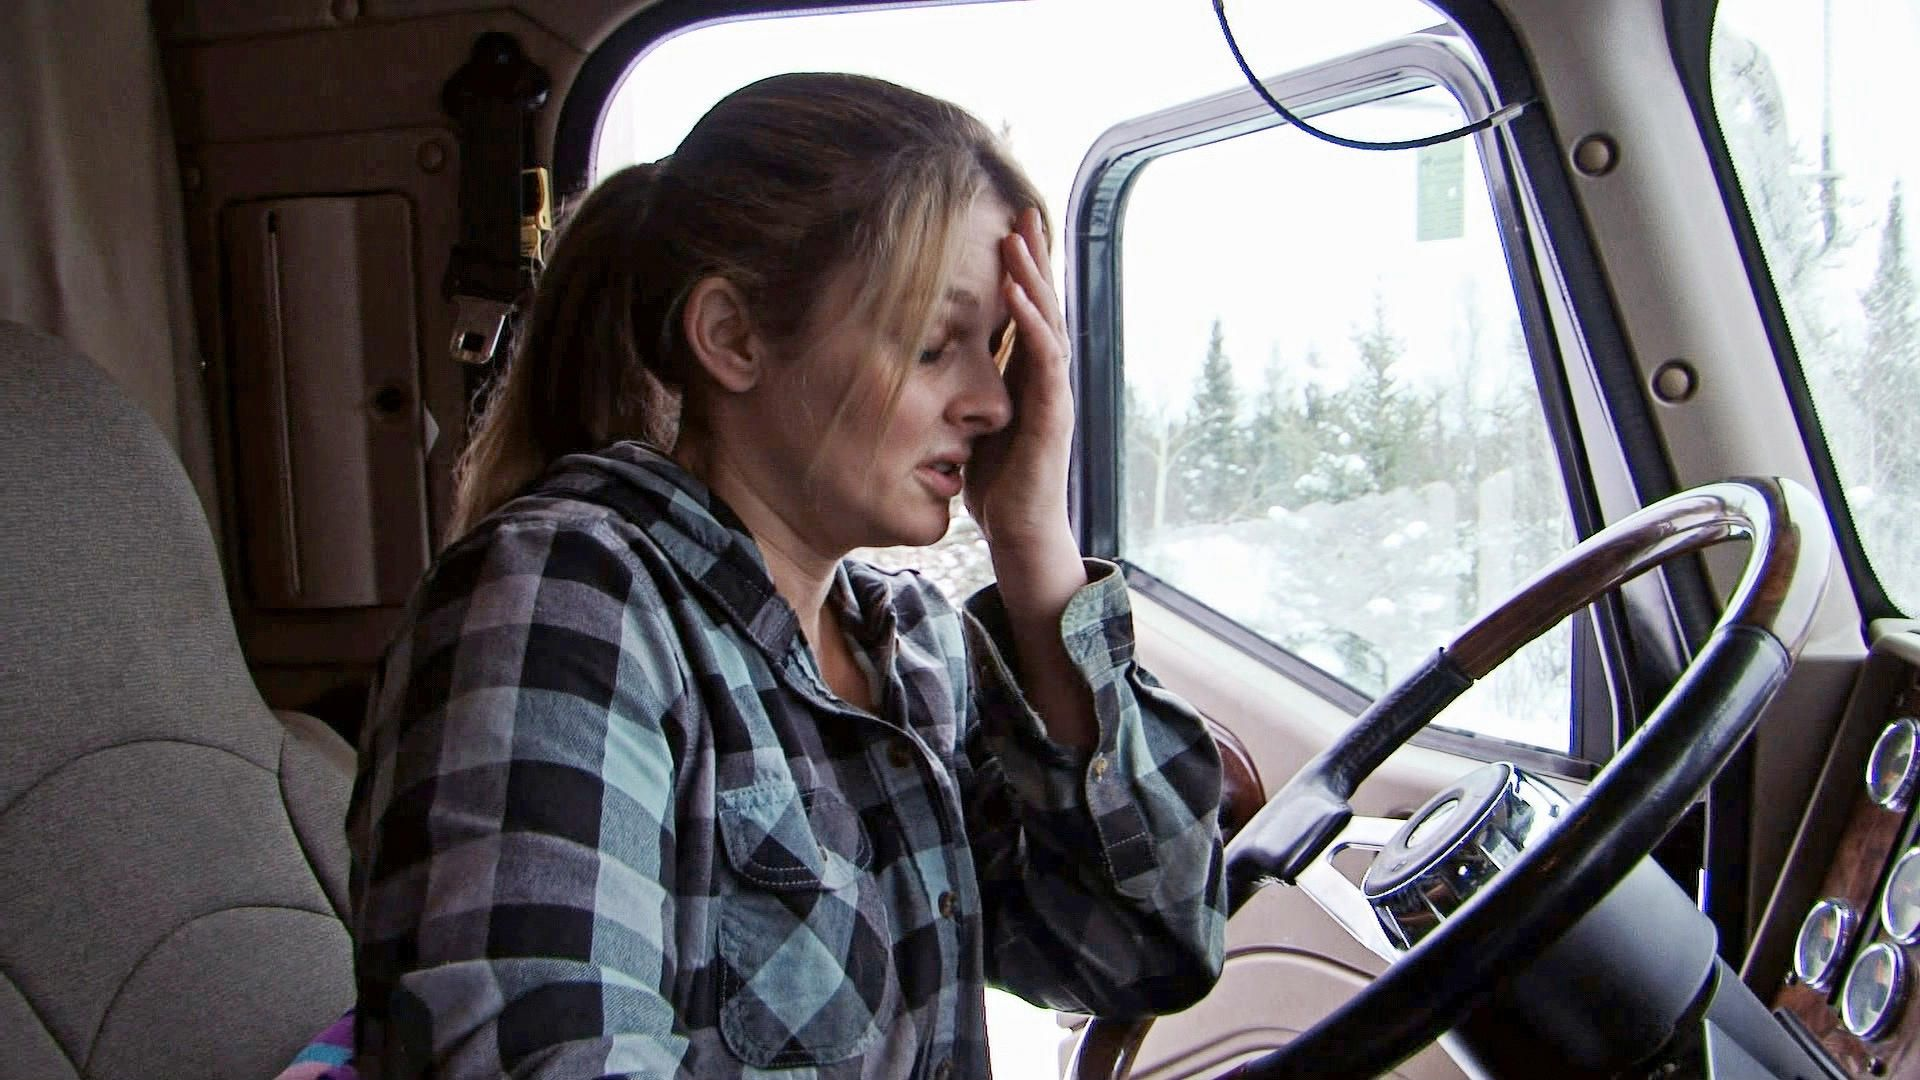 Ice Road Truckers New Season 2019 20 Crazy Restrictions Ice Road Truckers Have To Obey | ScreenRant